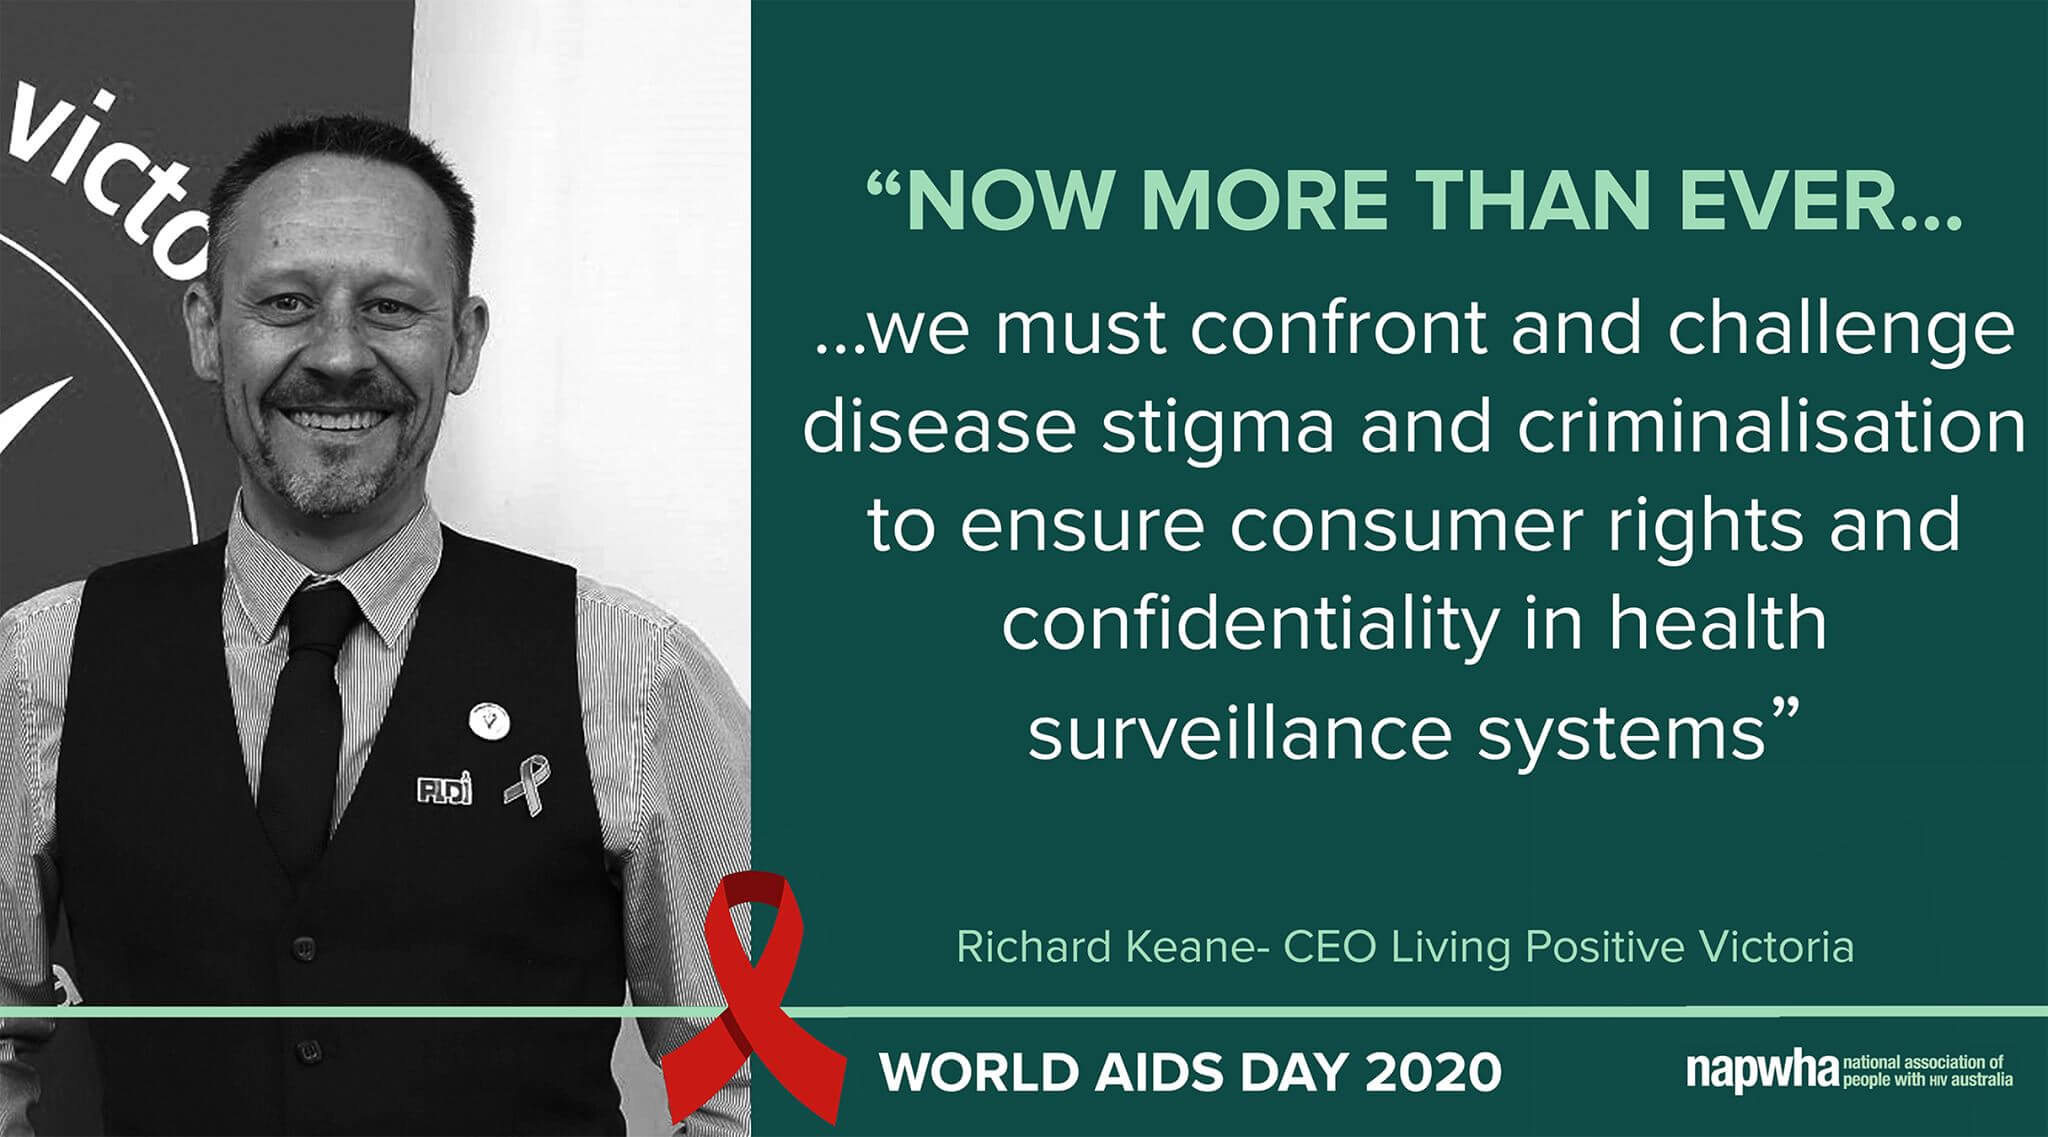 Richard Keane, CEO of Living Positive Victoria provides a World AIDS Day 2020 message